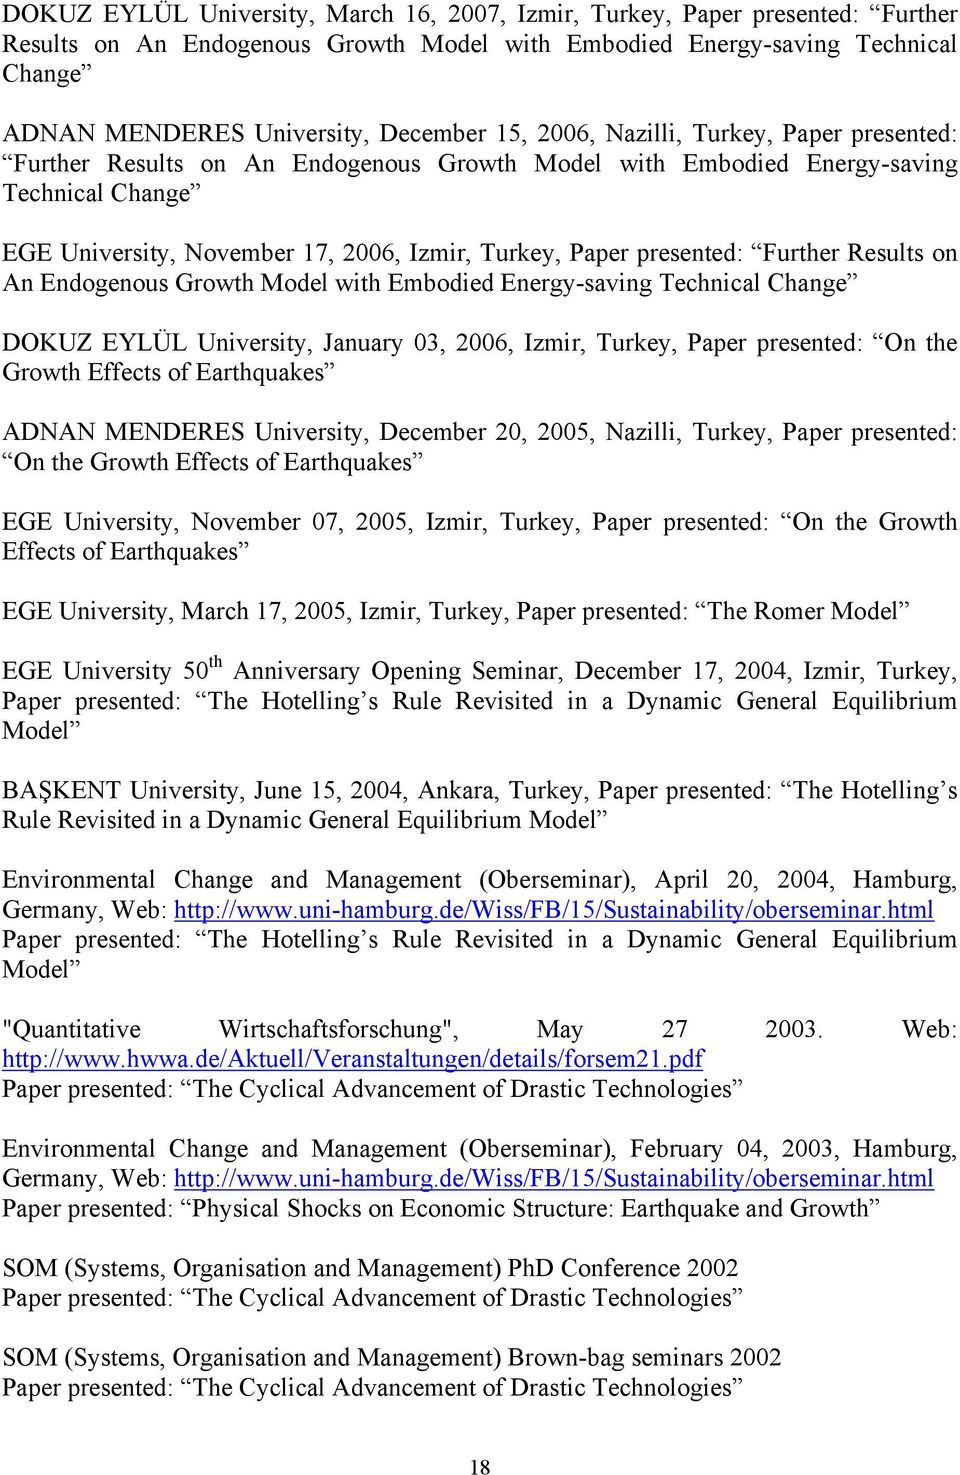 presented: Further Results on An Endogenous Growth Model with Embodied Energy-saving Technical Change DOKUZ EYLÜL University, January 03, 2006, Izmir, Turkey, Paper presented: On the Growth Effects